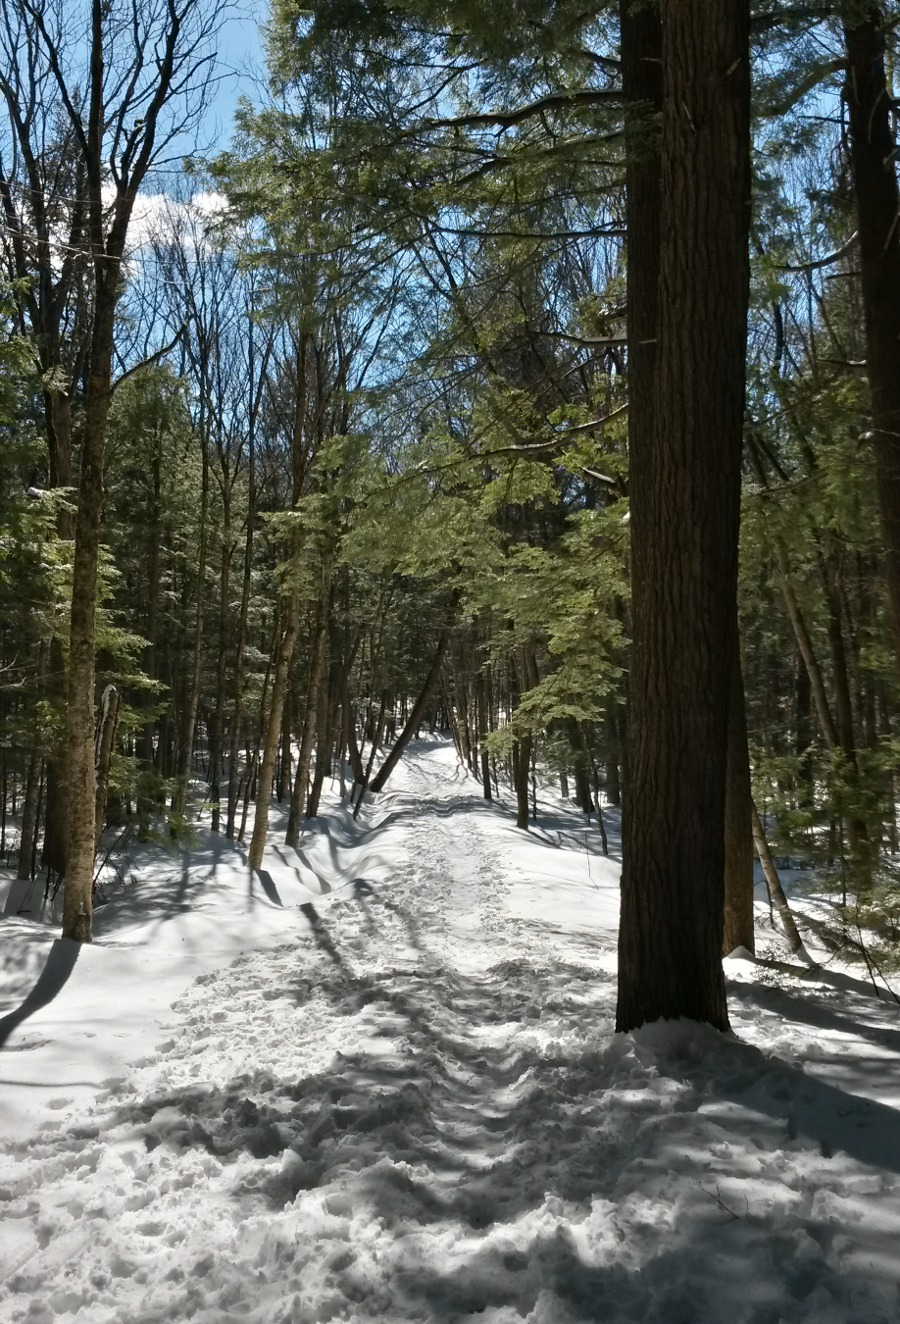 Snowshoeing in Odell Park